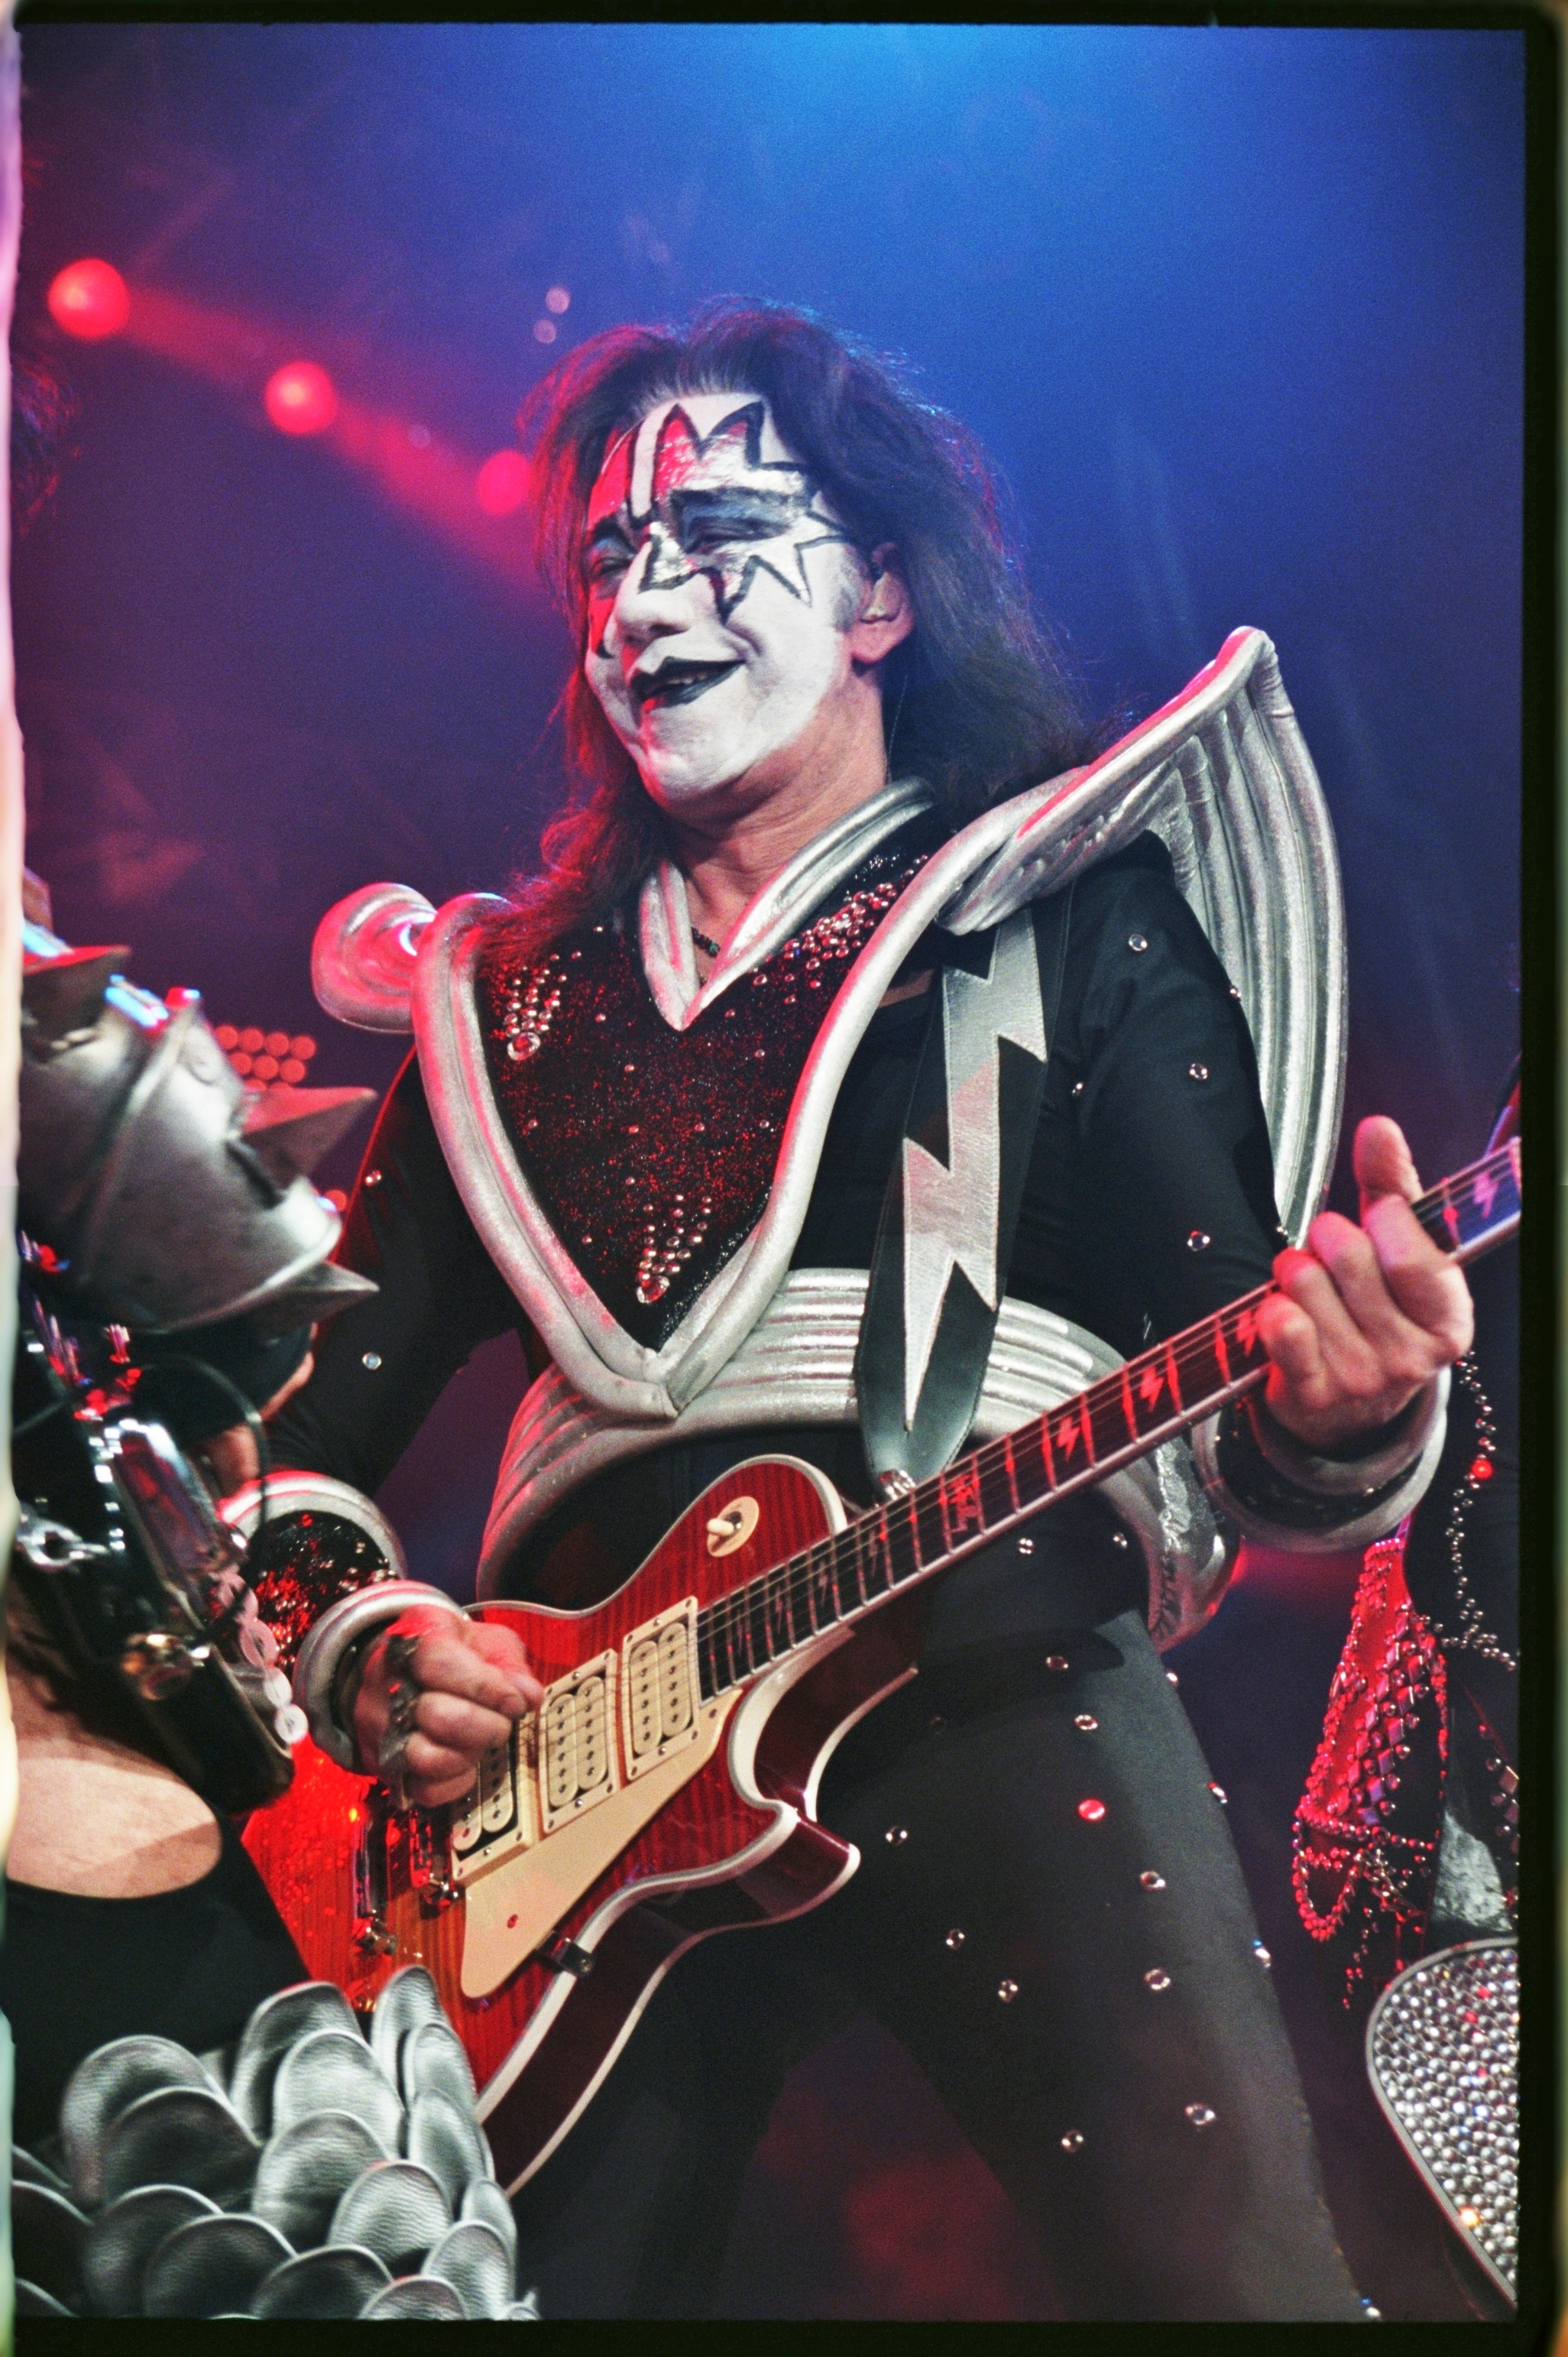 KISS lead guitarist Ace Frehley performing with KISS during their Farewell Tour in Bakersfield, CA.jpg